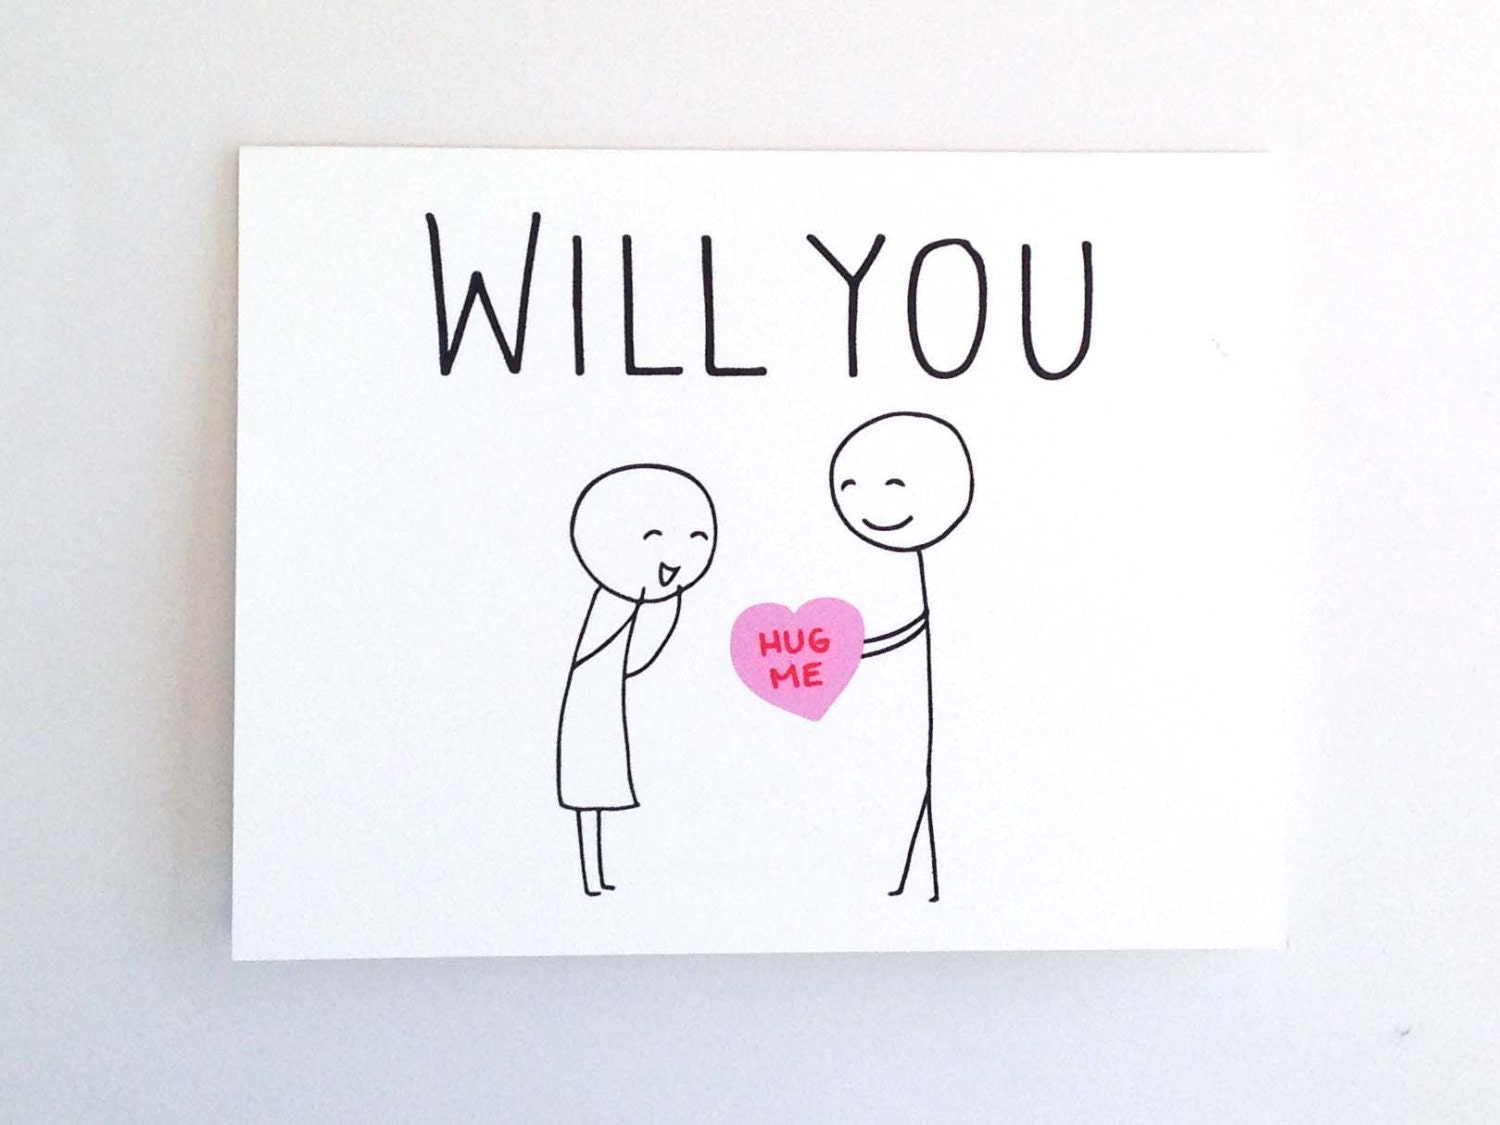 Will You Hug Me  Funny Valentine Card for Her  Quirky Love